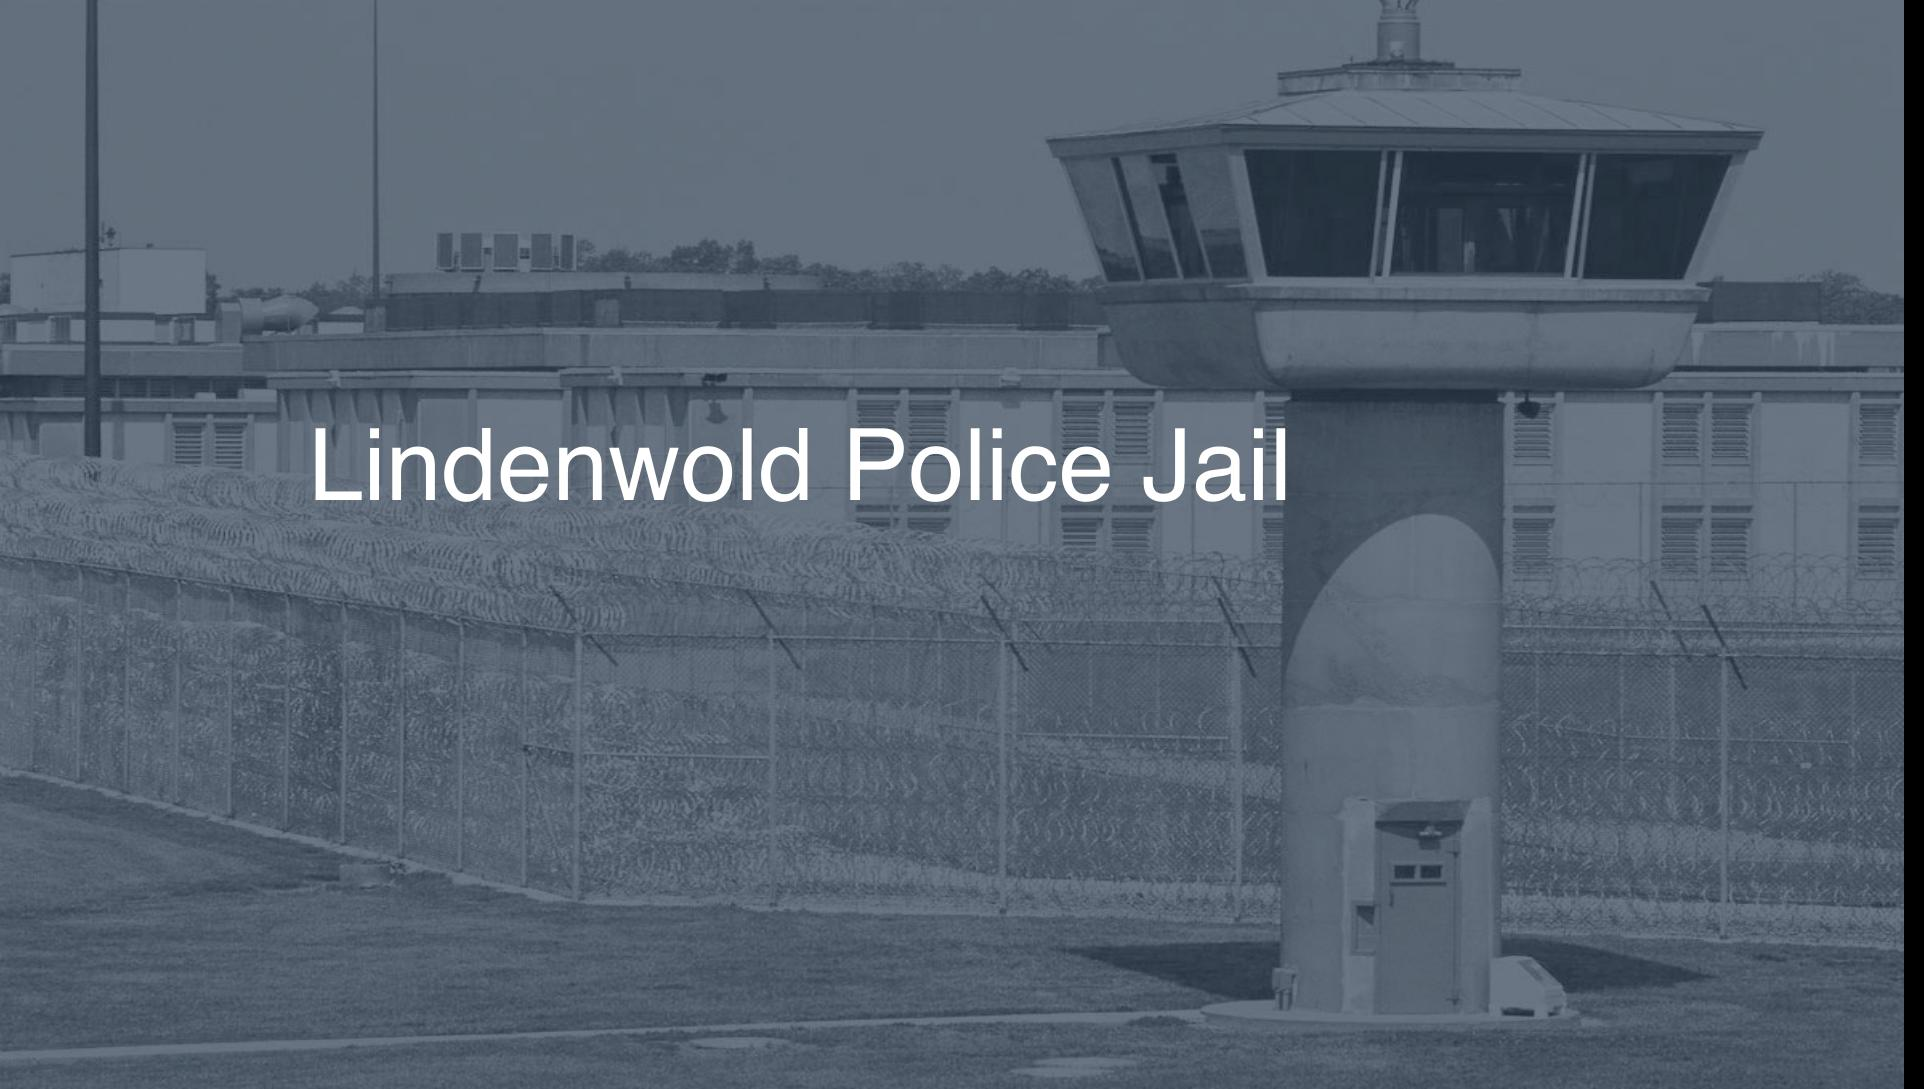 Lindenwold Police Jail | Pigeonly - Inmate Search, Locate